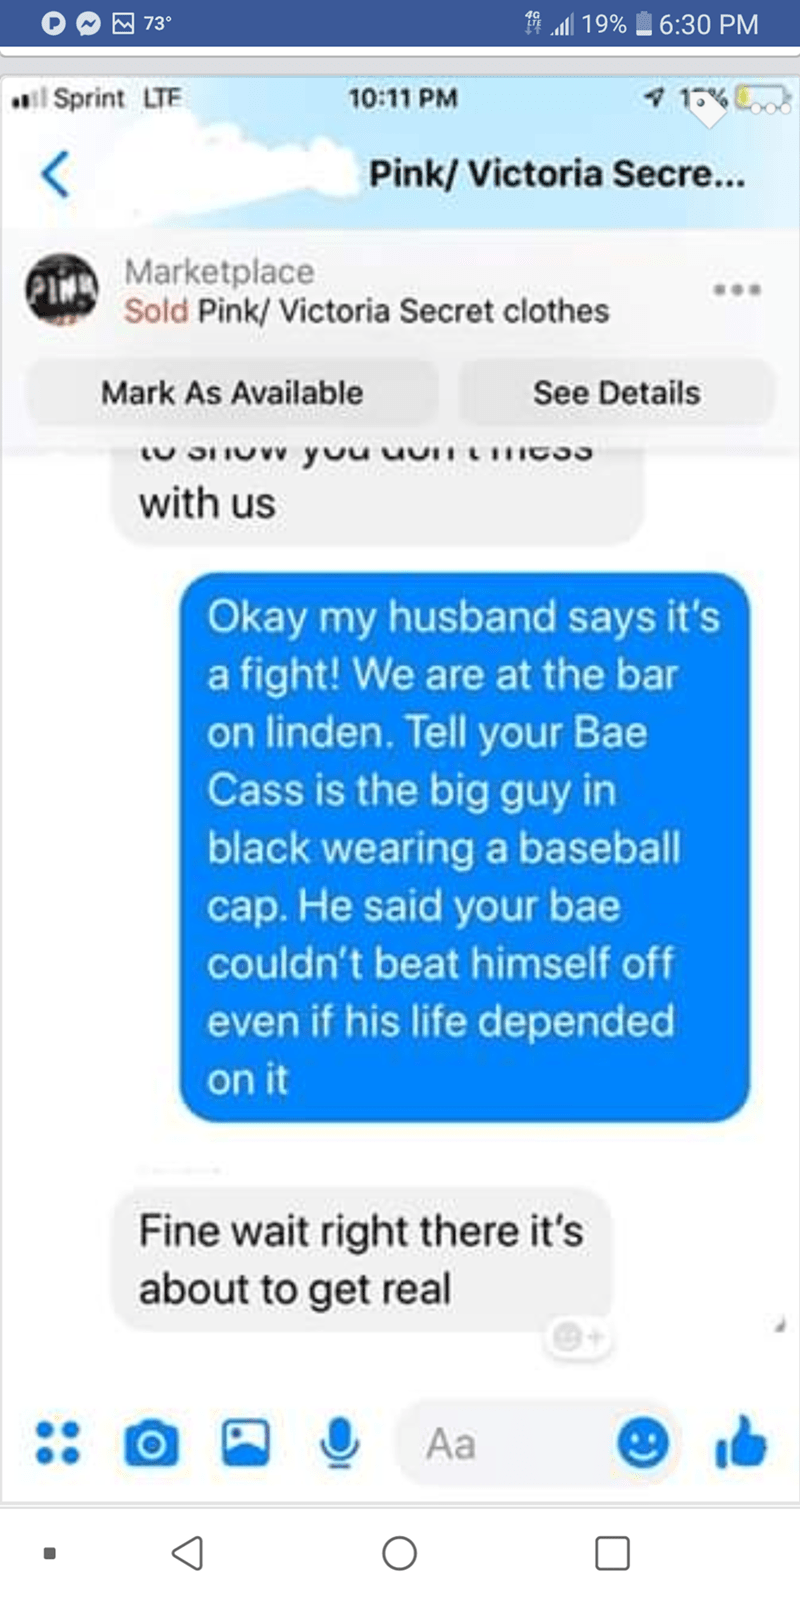 Text - l 19%6:30 PM 73° 7 1% 10:11 PM il Sprint LTE Pink/Victoria Secre... Marketplace Sold Pink/Victoria Secret clothes Mark As Available See Details with us Okay my husband says it's a fight! We are at the bar on linden. Tell your Bae Cass is the big guy in black wearing a baseball cap. He said your bae couldn't beat himself off even if his life depended on it Fine wait right there it's about to get real Aa